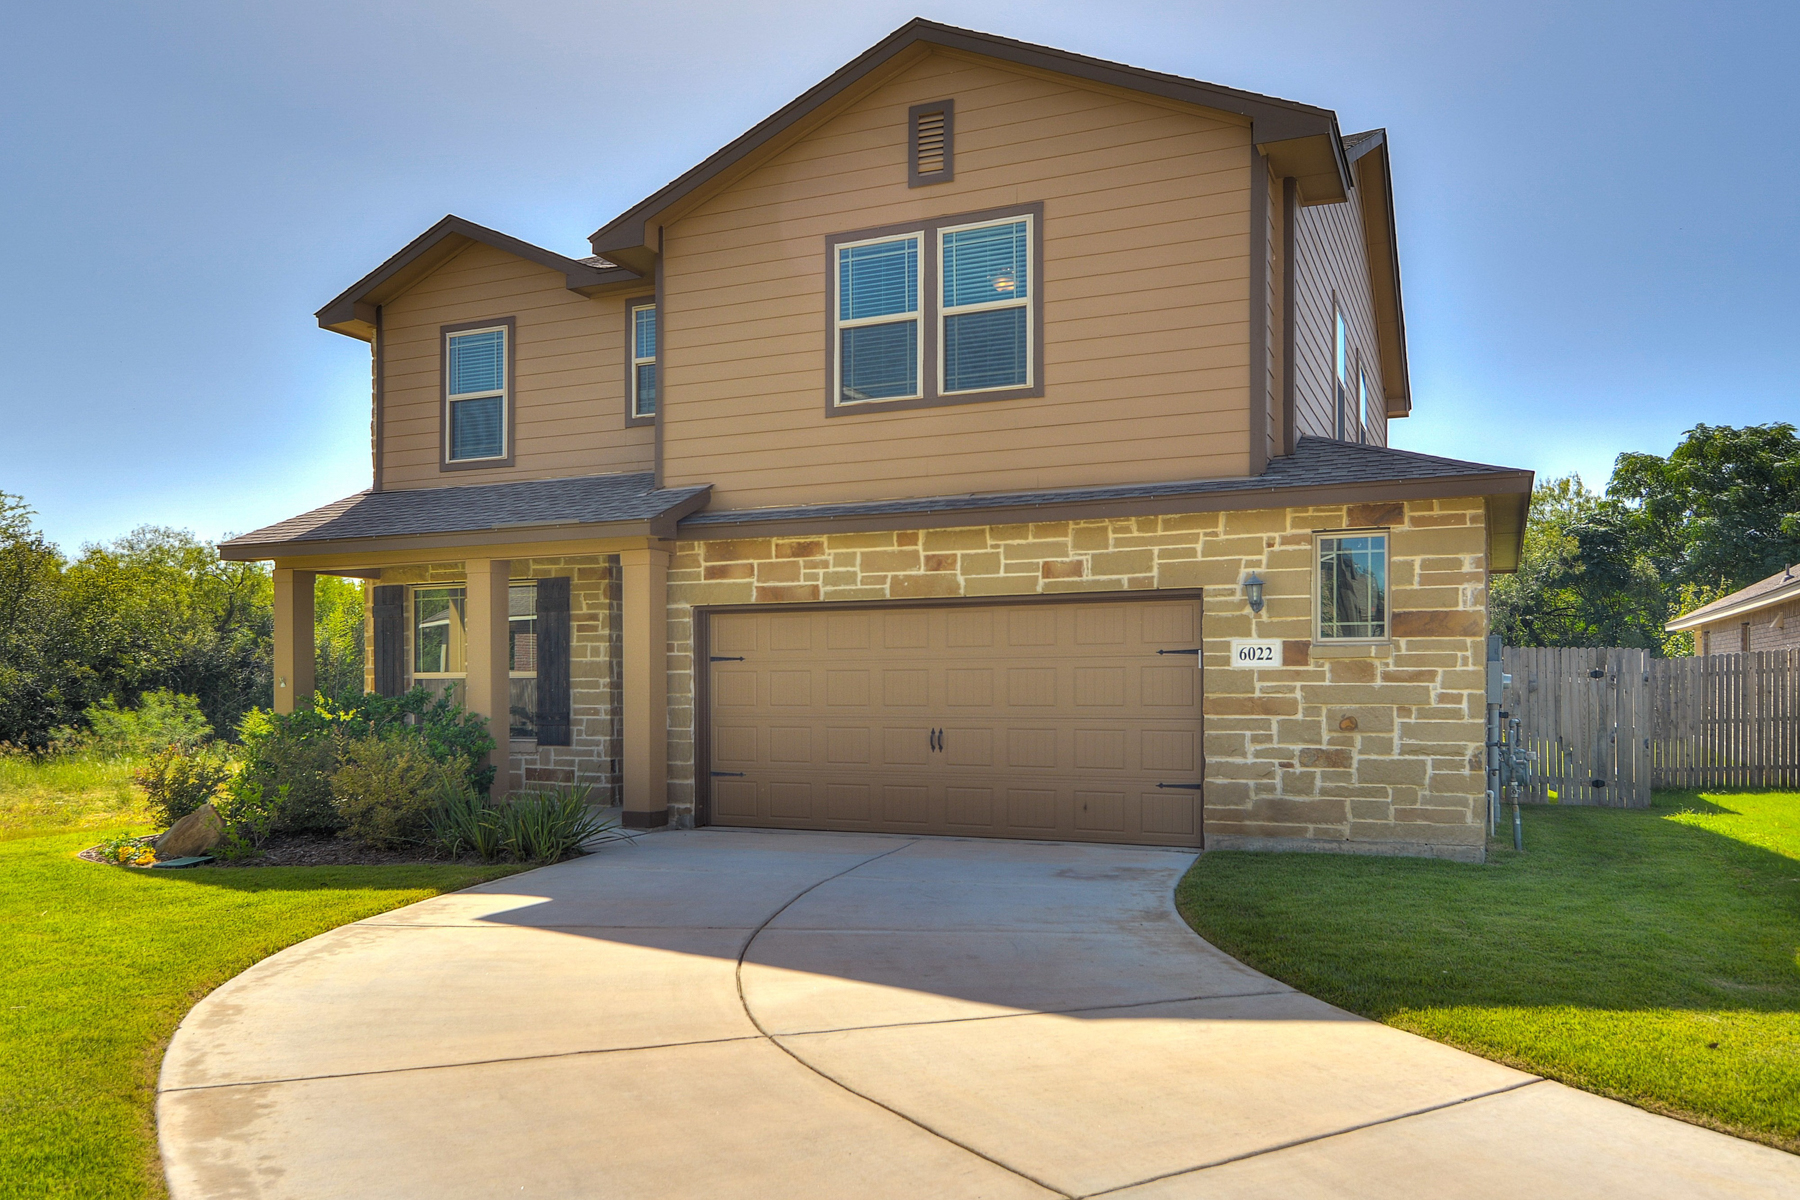 Additional photo for property listing at Move-In Ready Gem in The Trails at Providence 6022 Venado Trl San Antonio, Texas 78240 Estados Unidos